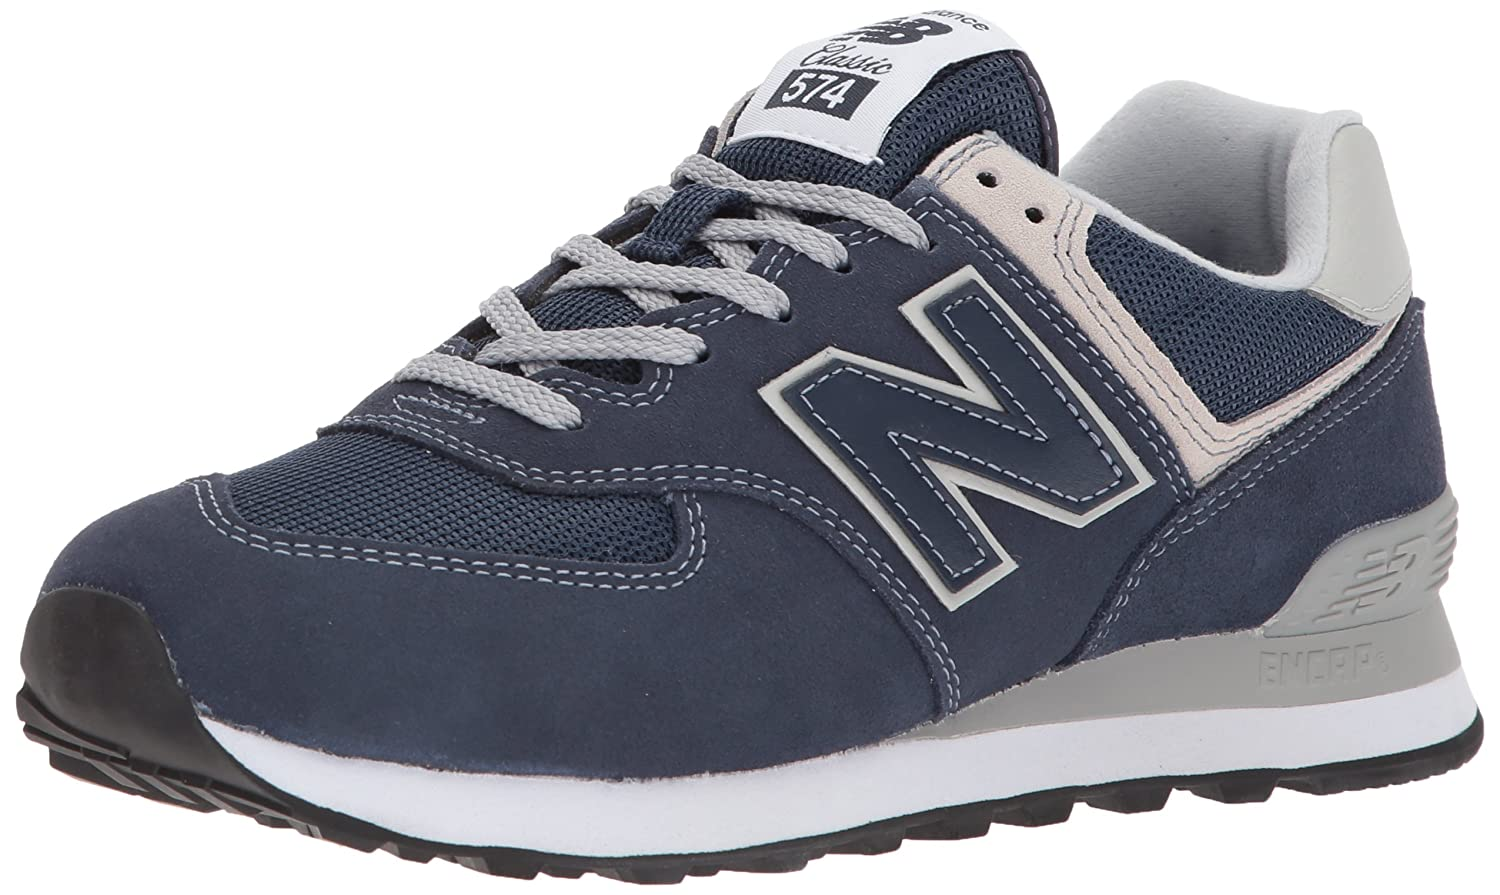 New Balance Women's Iconic 574 Sneaker B072FQSNHV 6 D US|Navy